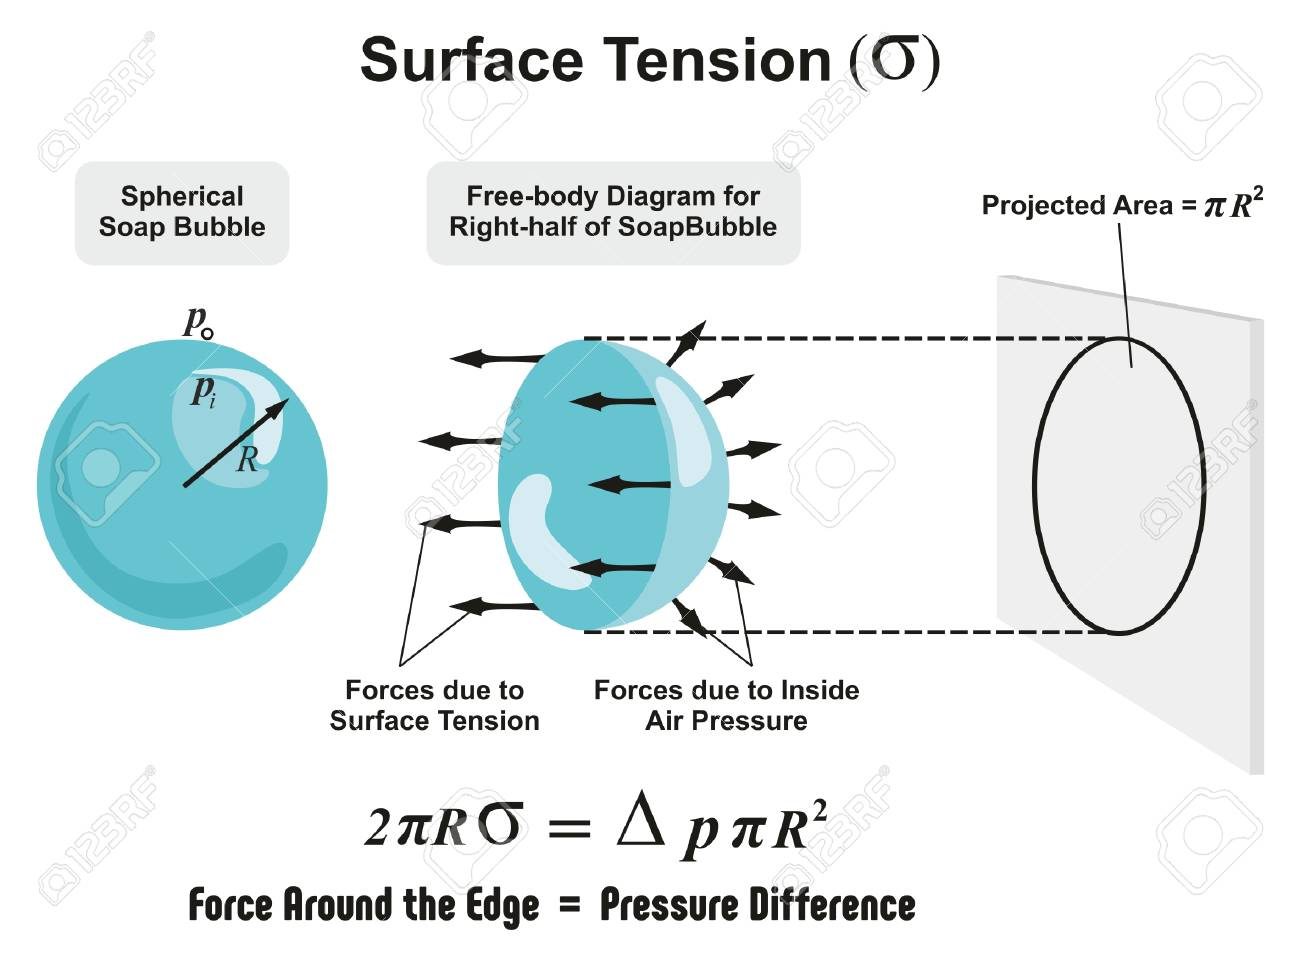 hight resolution of surface tension physics lesson of spherical soap bubble with all forces arrows and inside air pressure